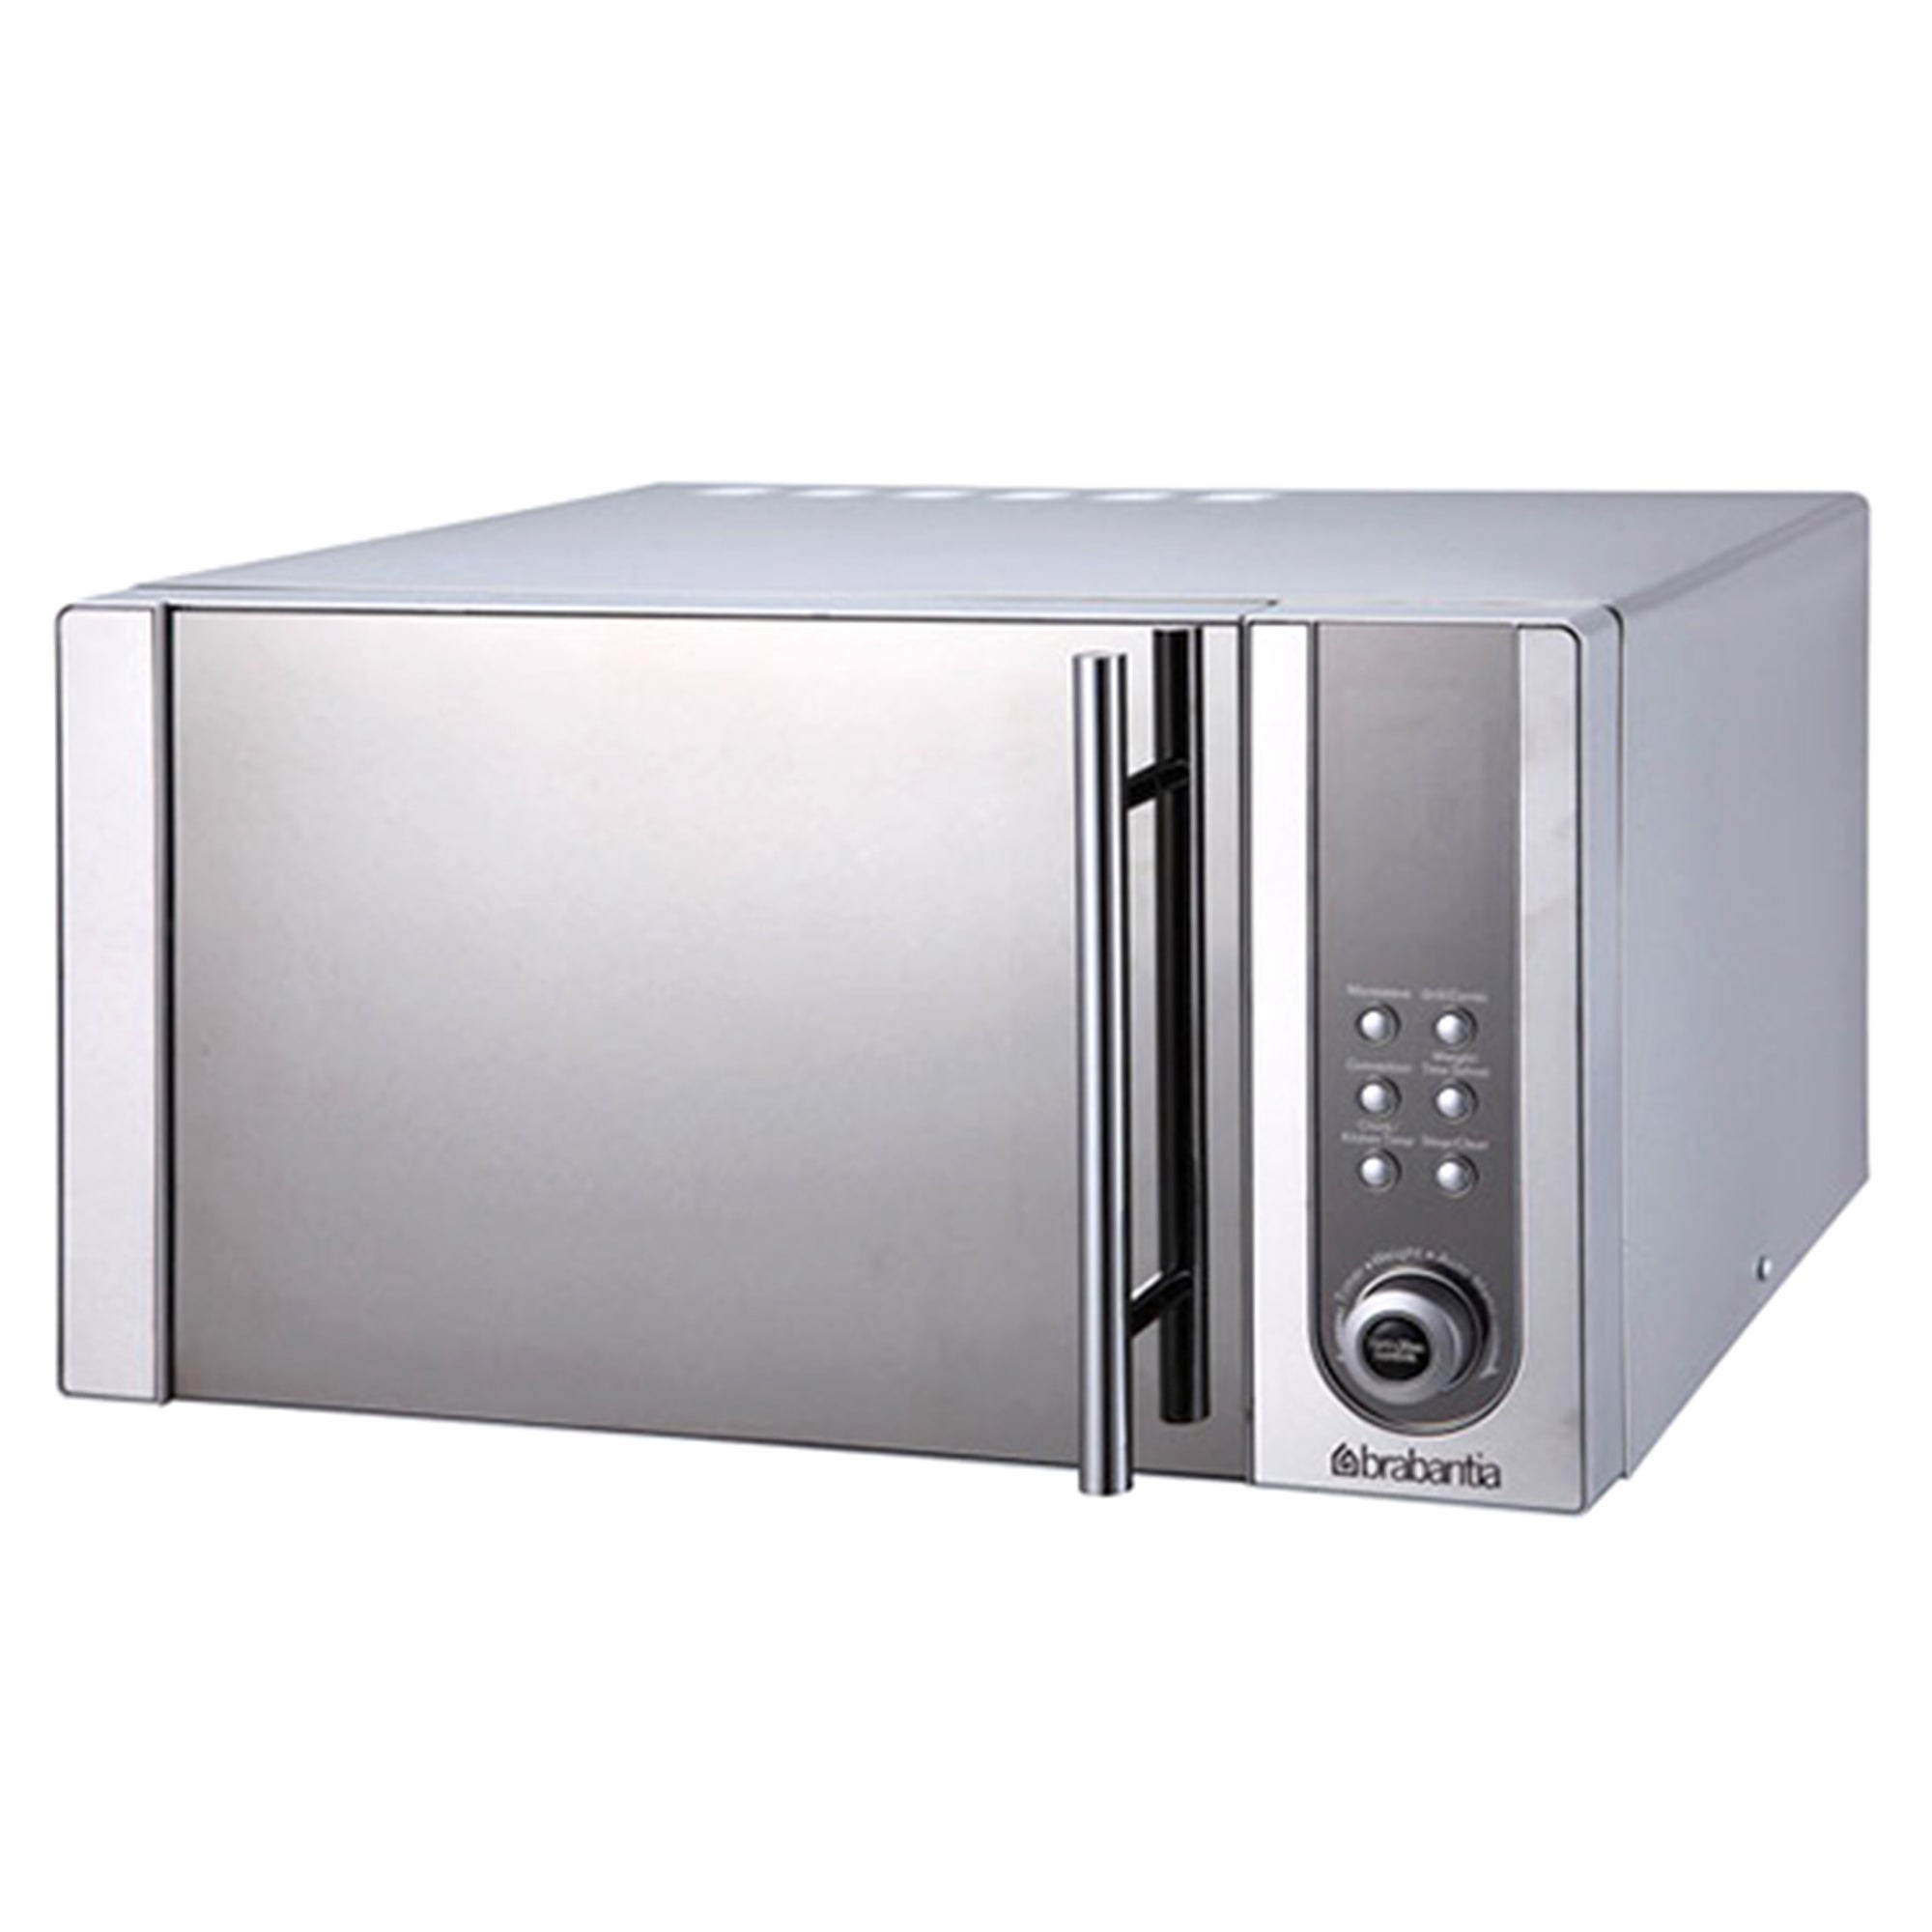 Brabantia Stainless Steel Microwave and Grill